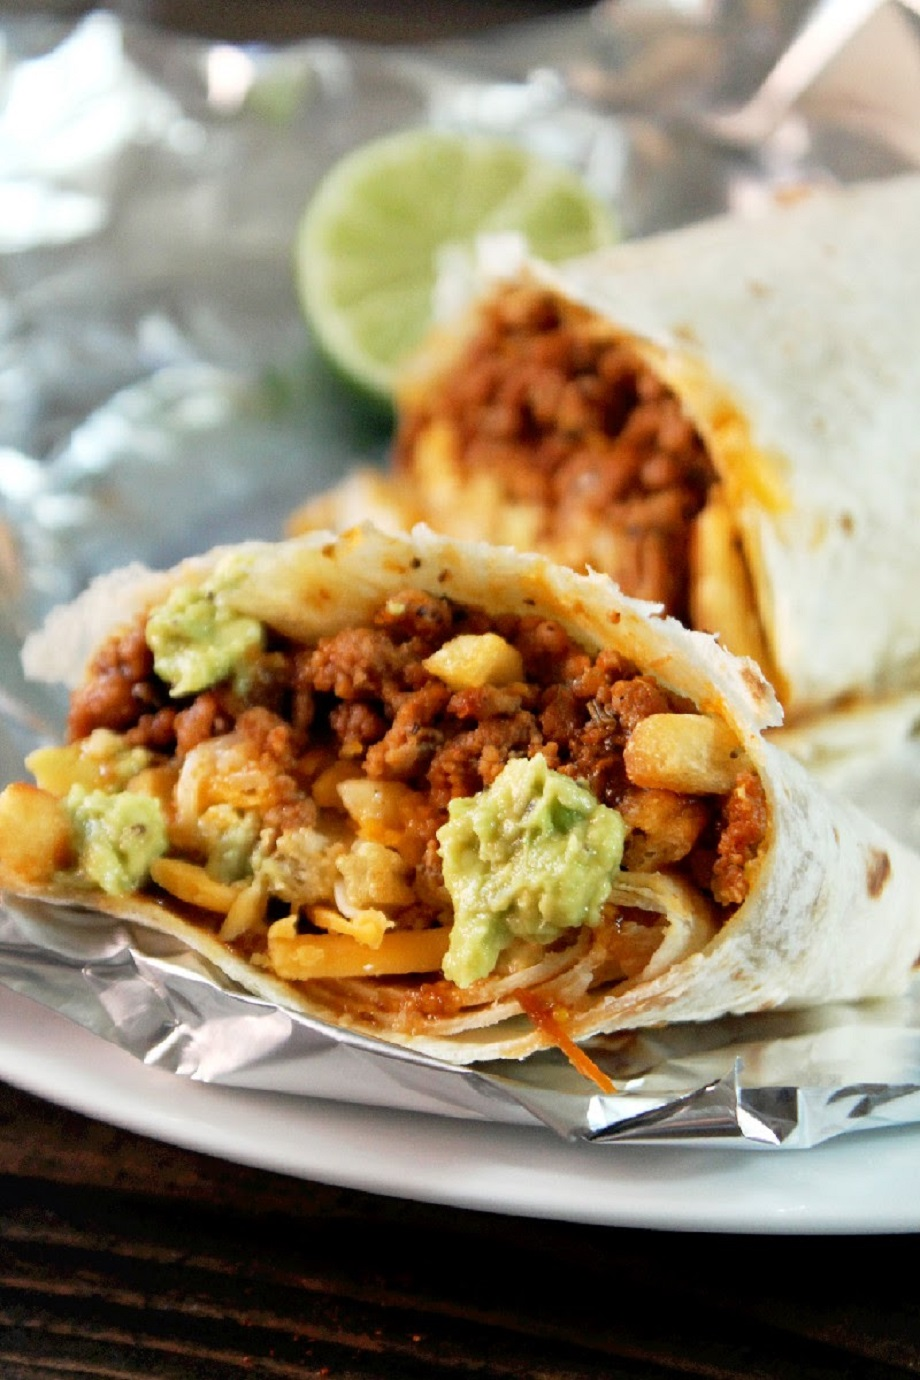 Burritos California Style, Loaded with Cheese, French Fries, & Guacamole